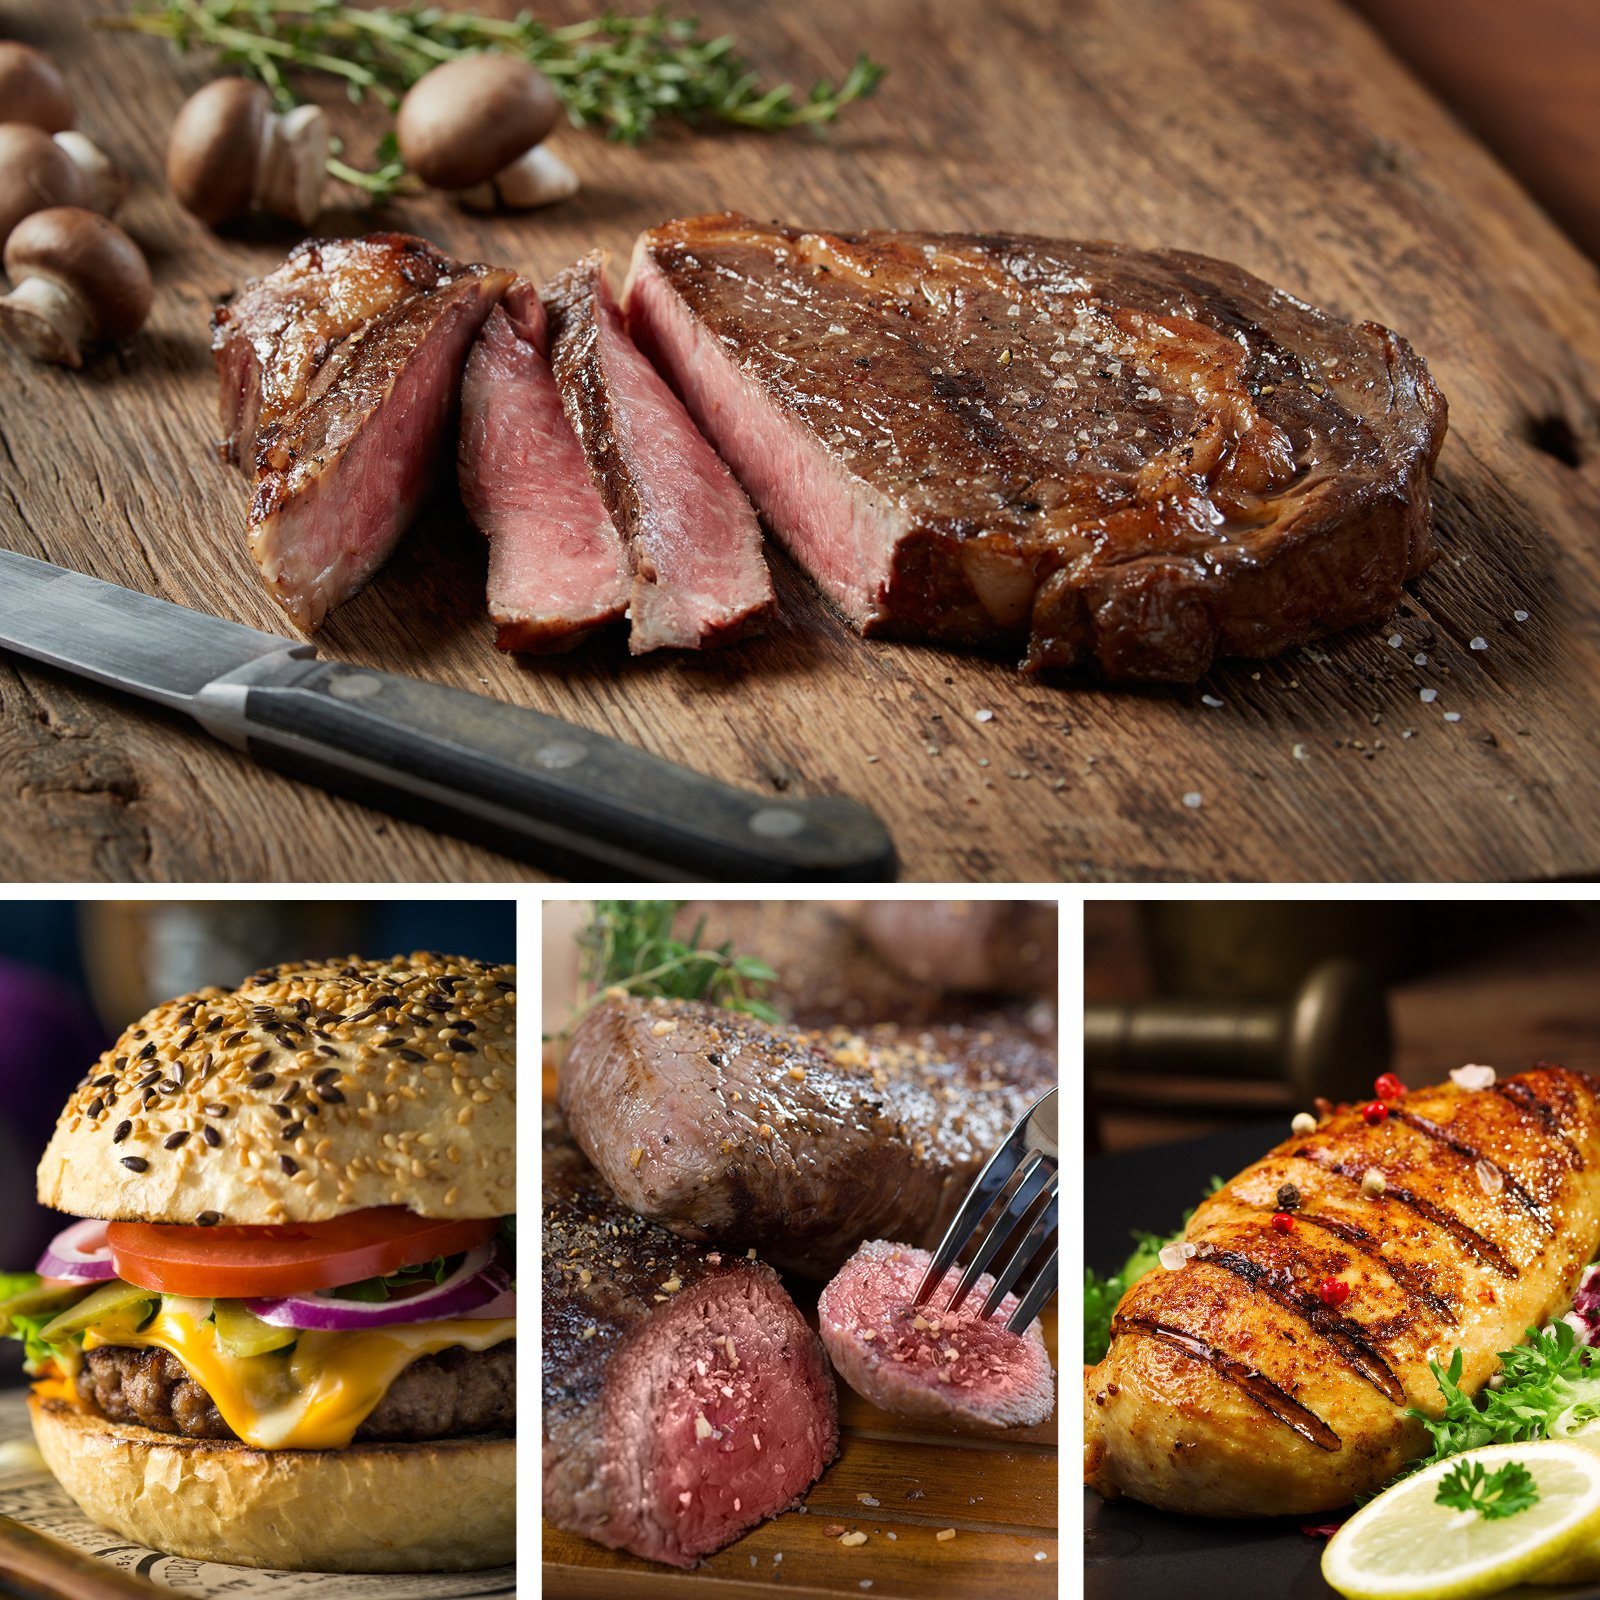 Ultimate Grilling Assortment - Includes Ribeye and Top Sirloin Steaks, Angus Steak Burgers, and Lemon Herb Chicken Breasts - Chicago Steak Company - ASSRT401